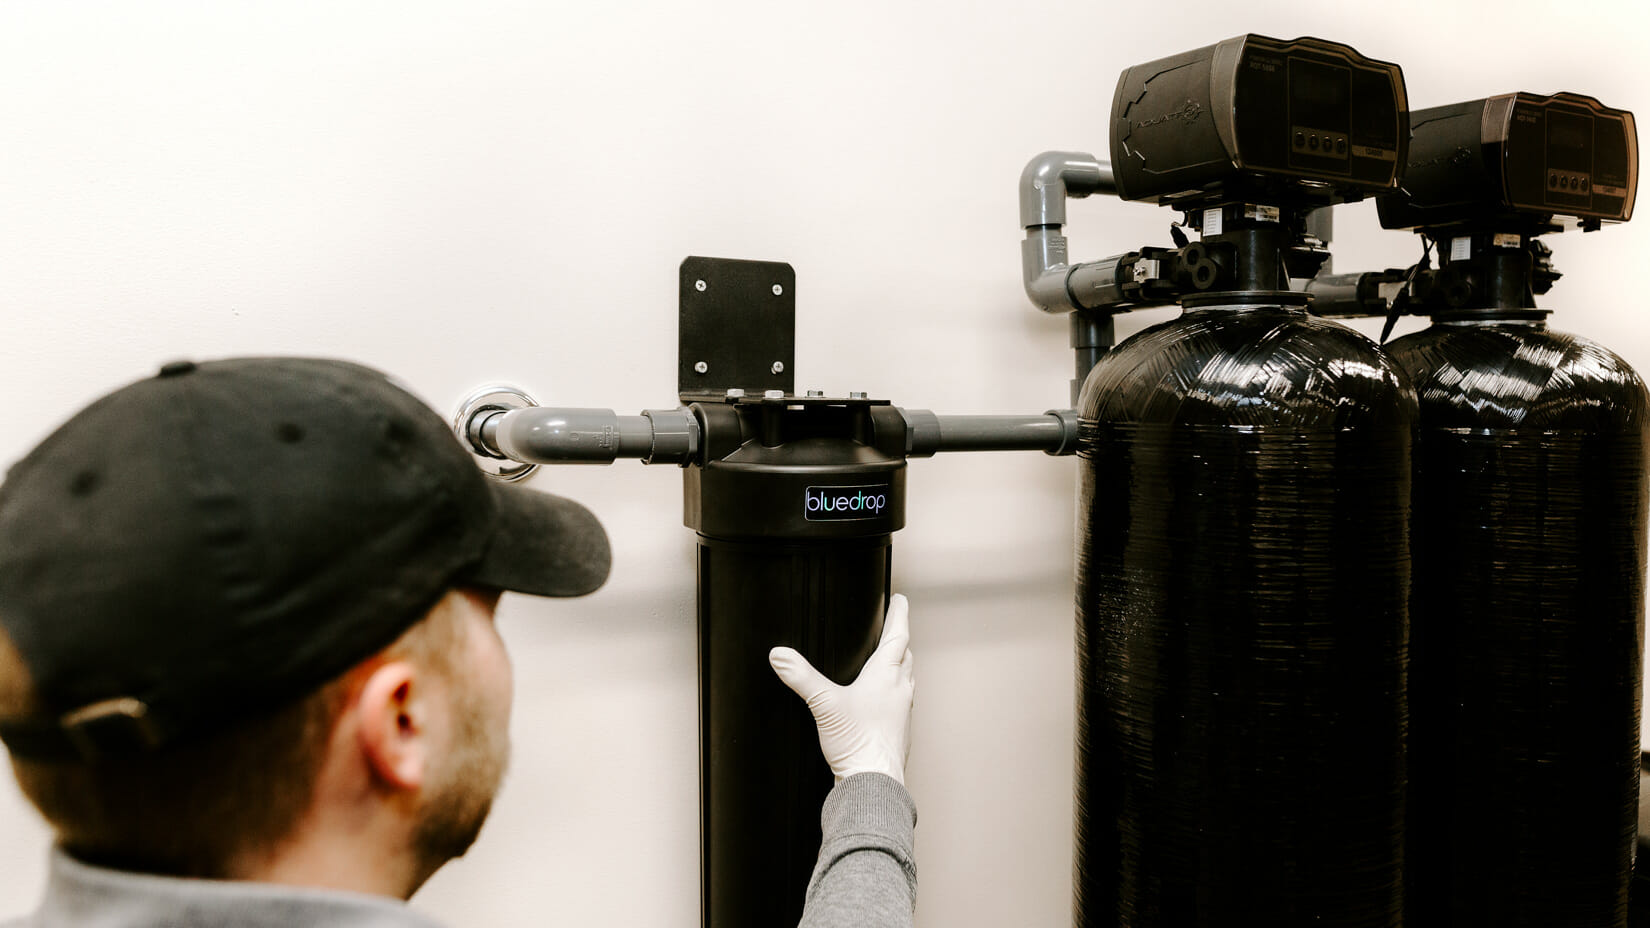 A residential water softening system.